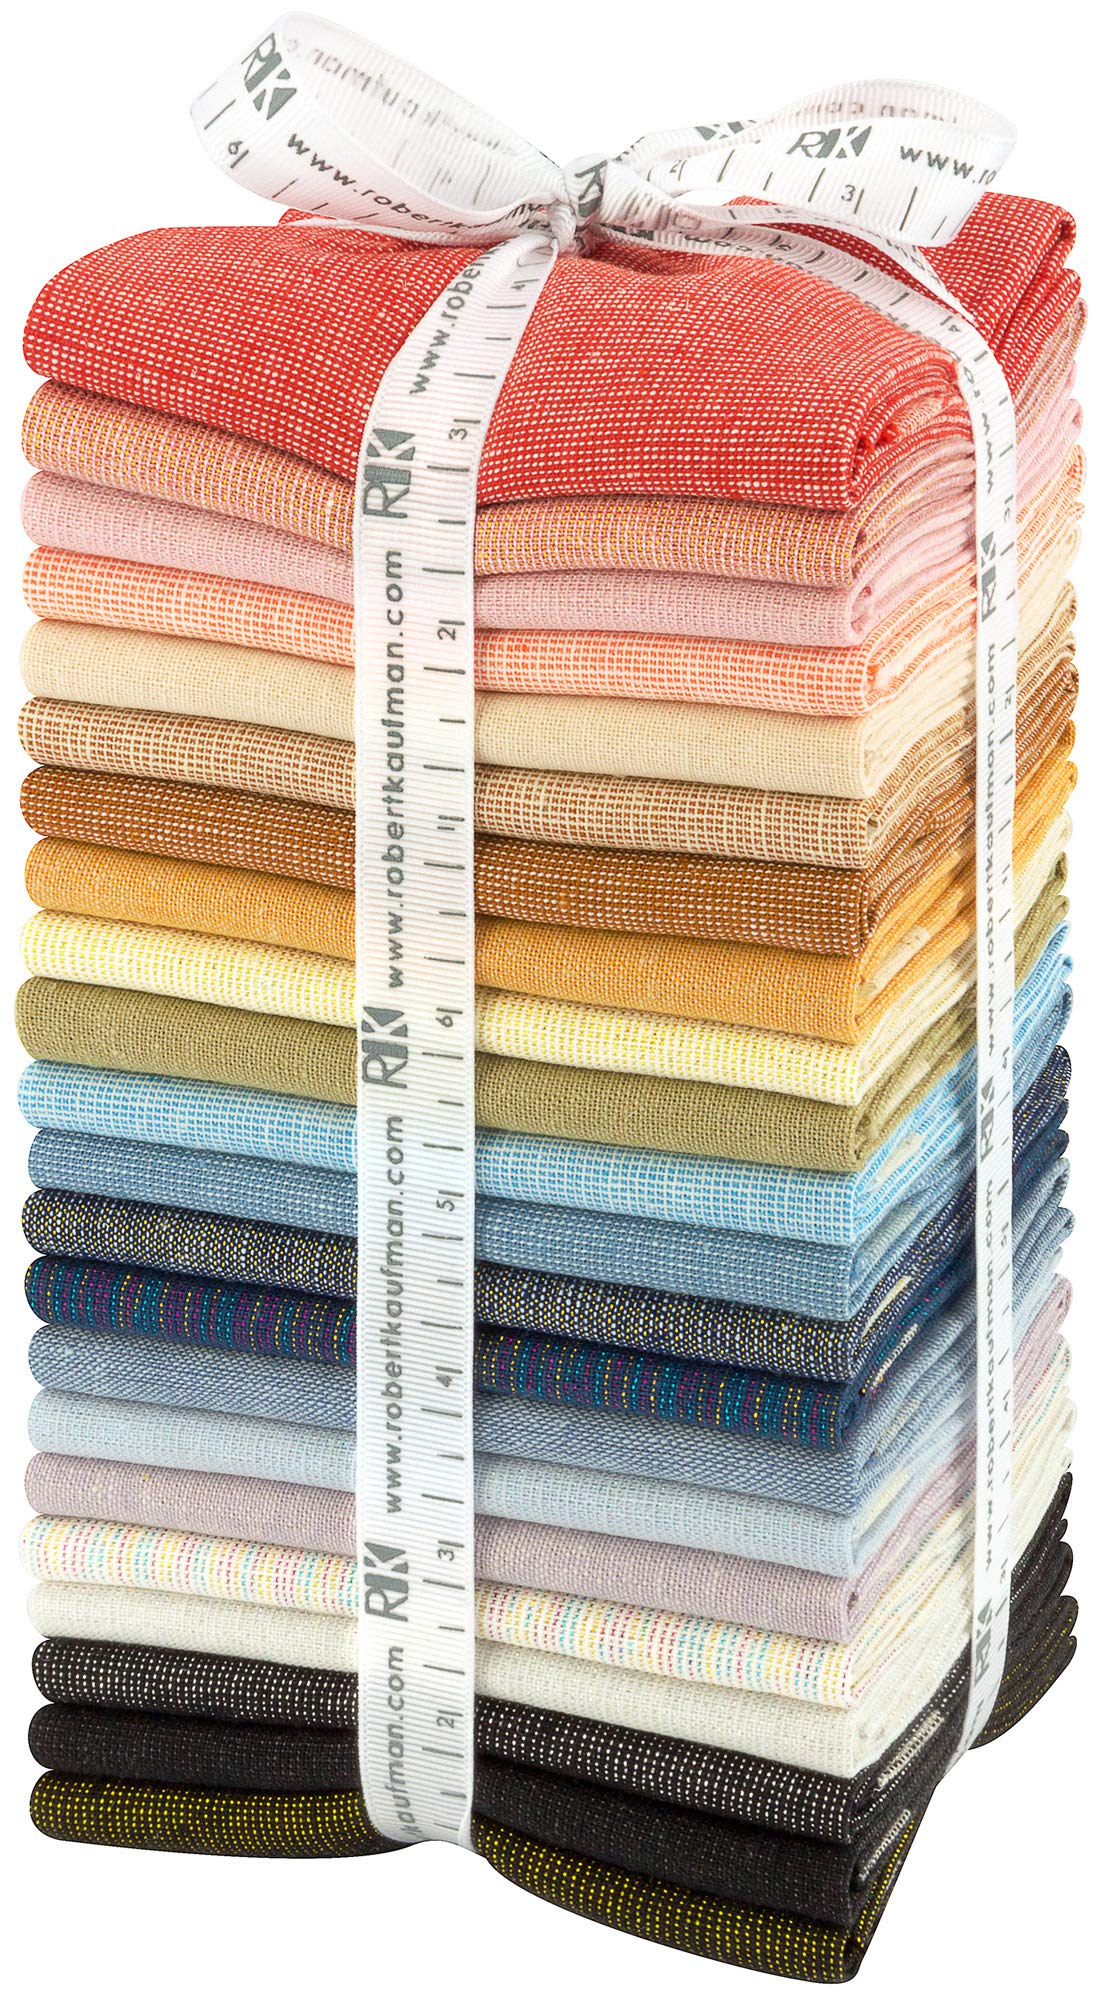 Essex Yarn Dyed 2018 New Colors 22 Fat Quarters Robert Kaufman Fabrics FQ-1456-22 by Robert Kaufman Fabrics (Image #1)